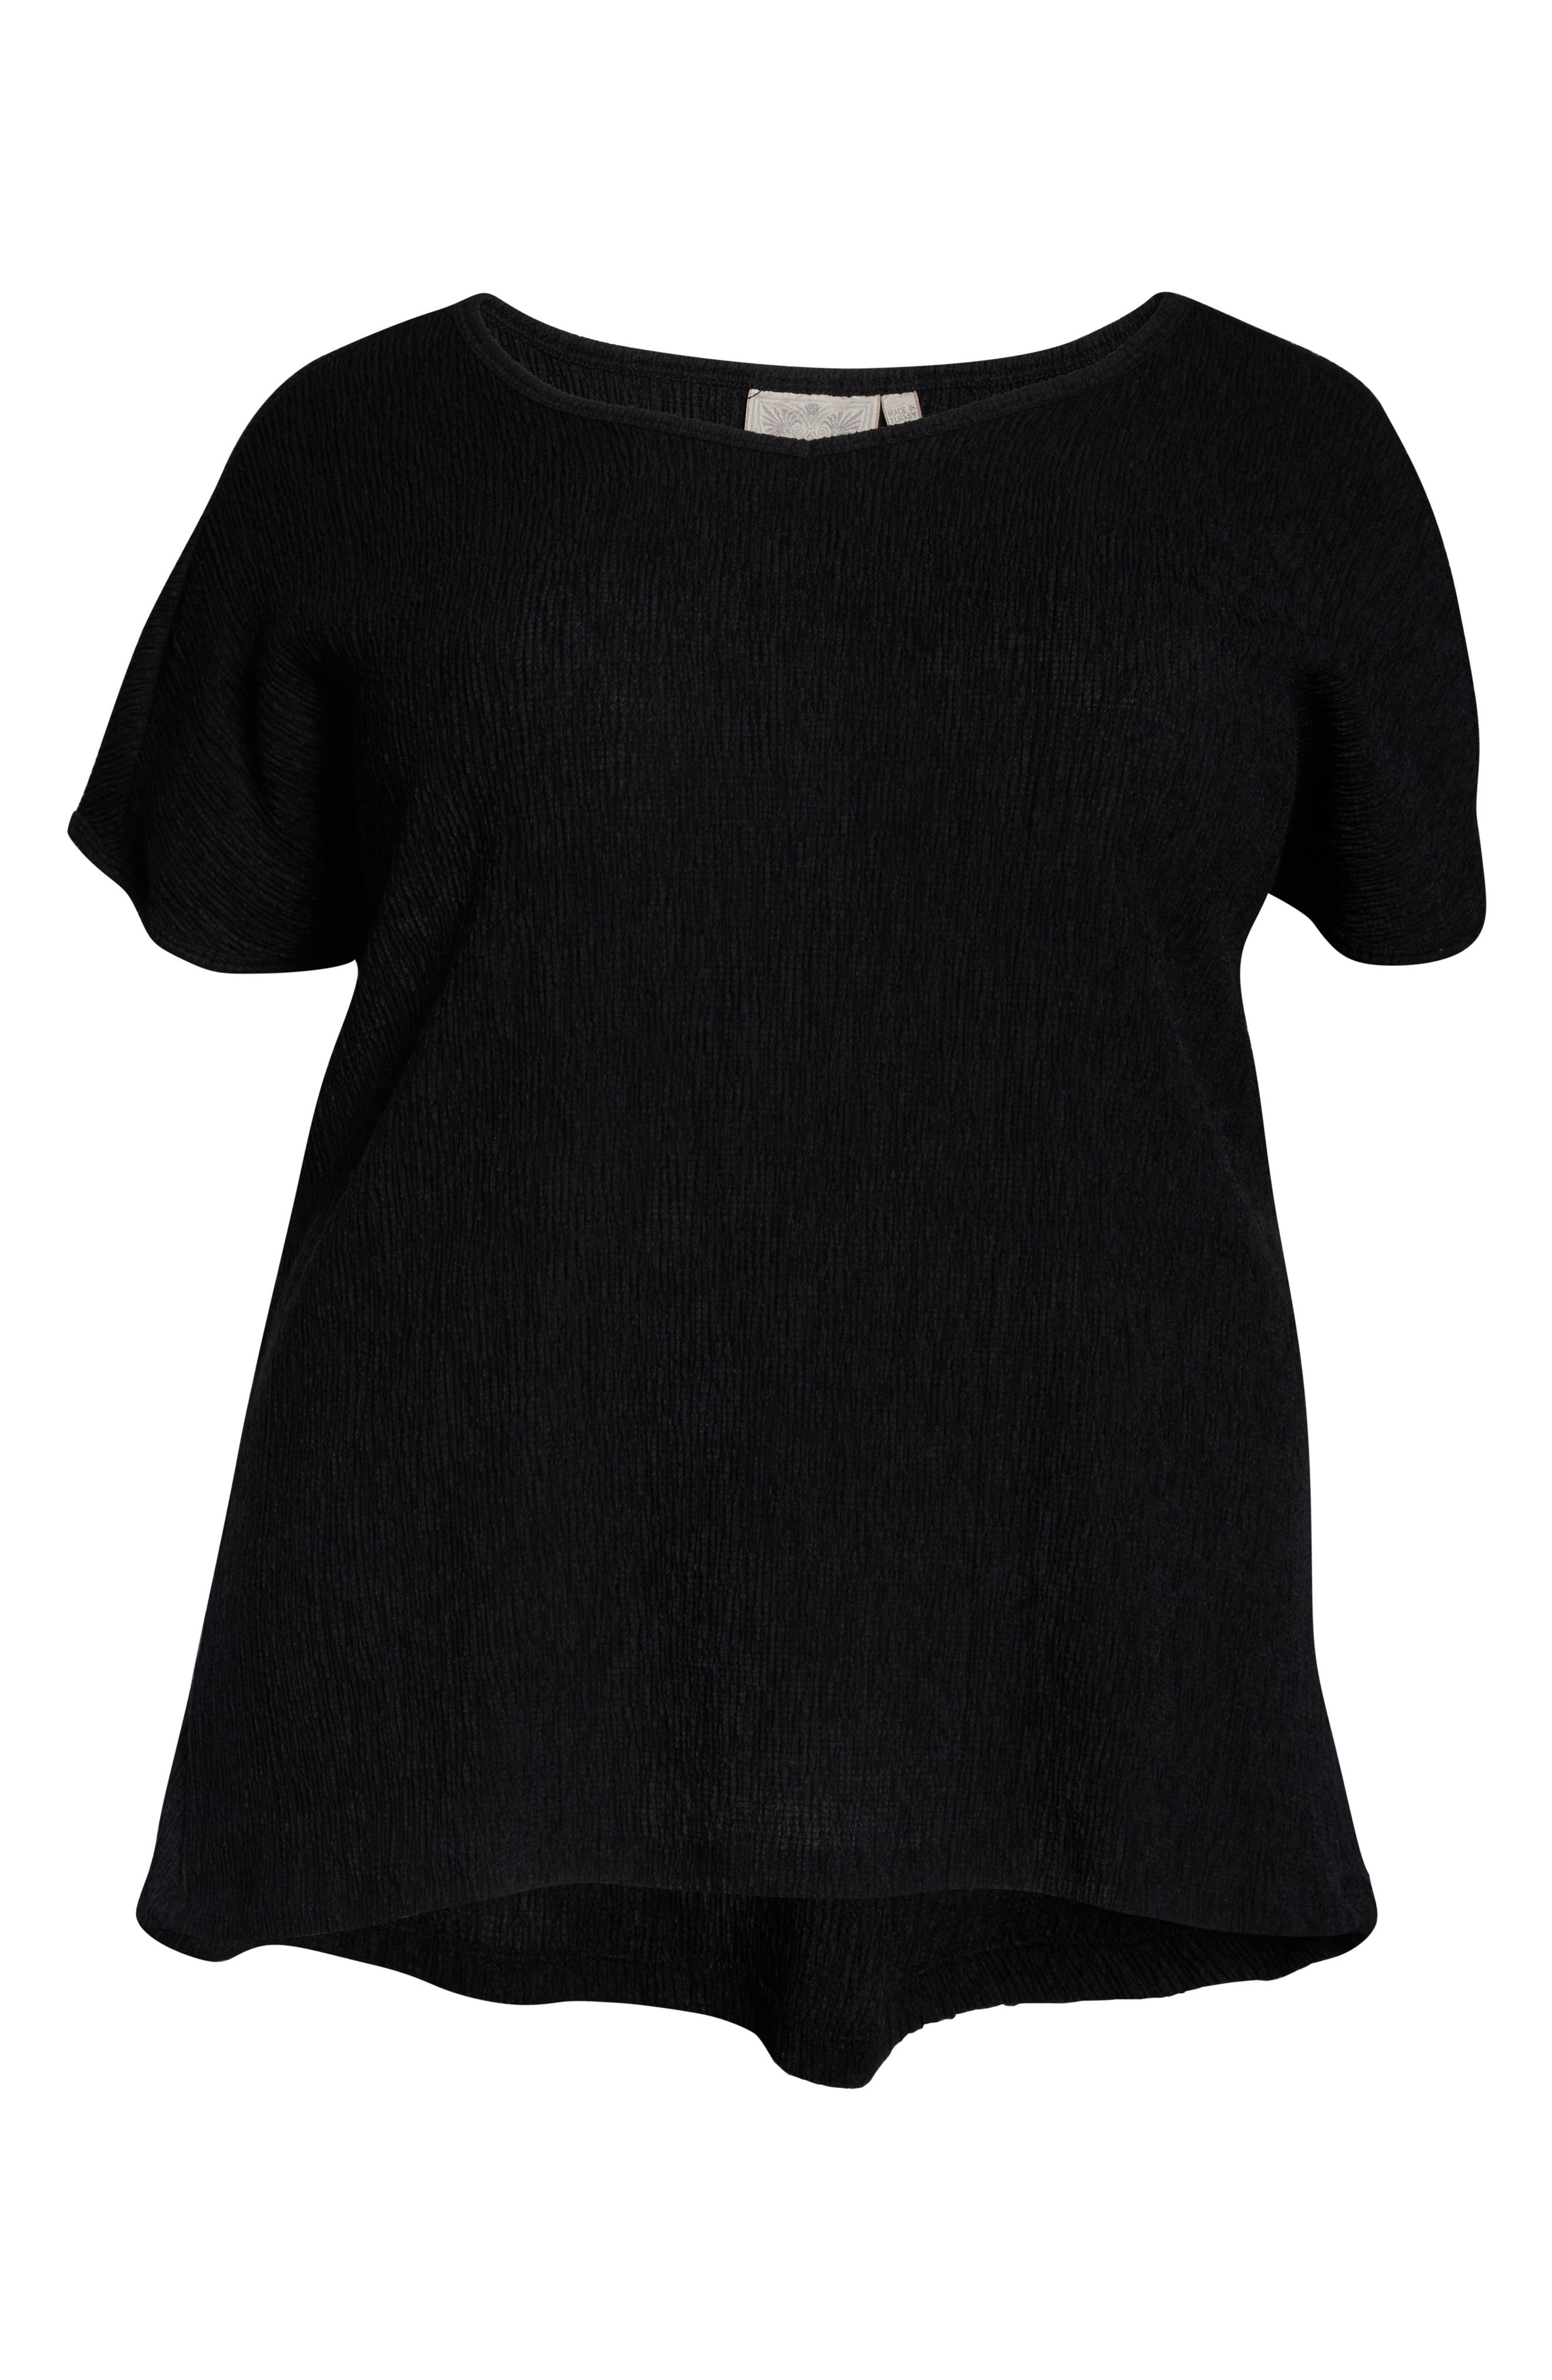 3bd8fb558f5 Women's Plus-Size Tops | Nordstrom